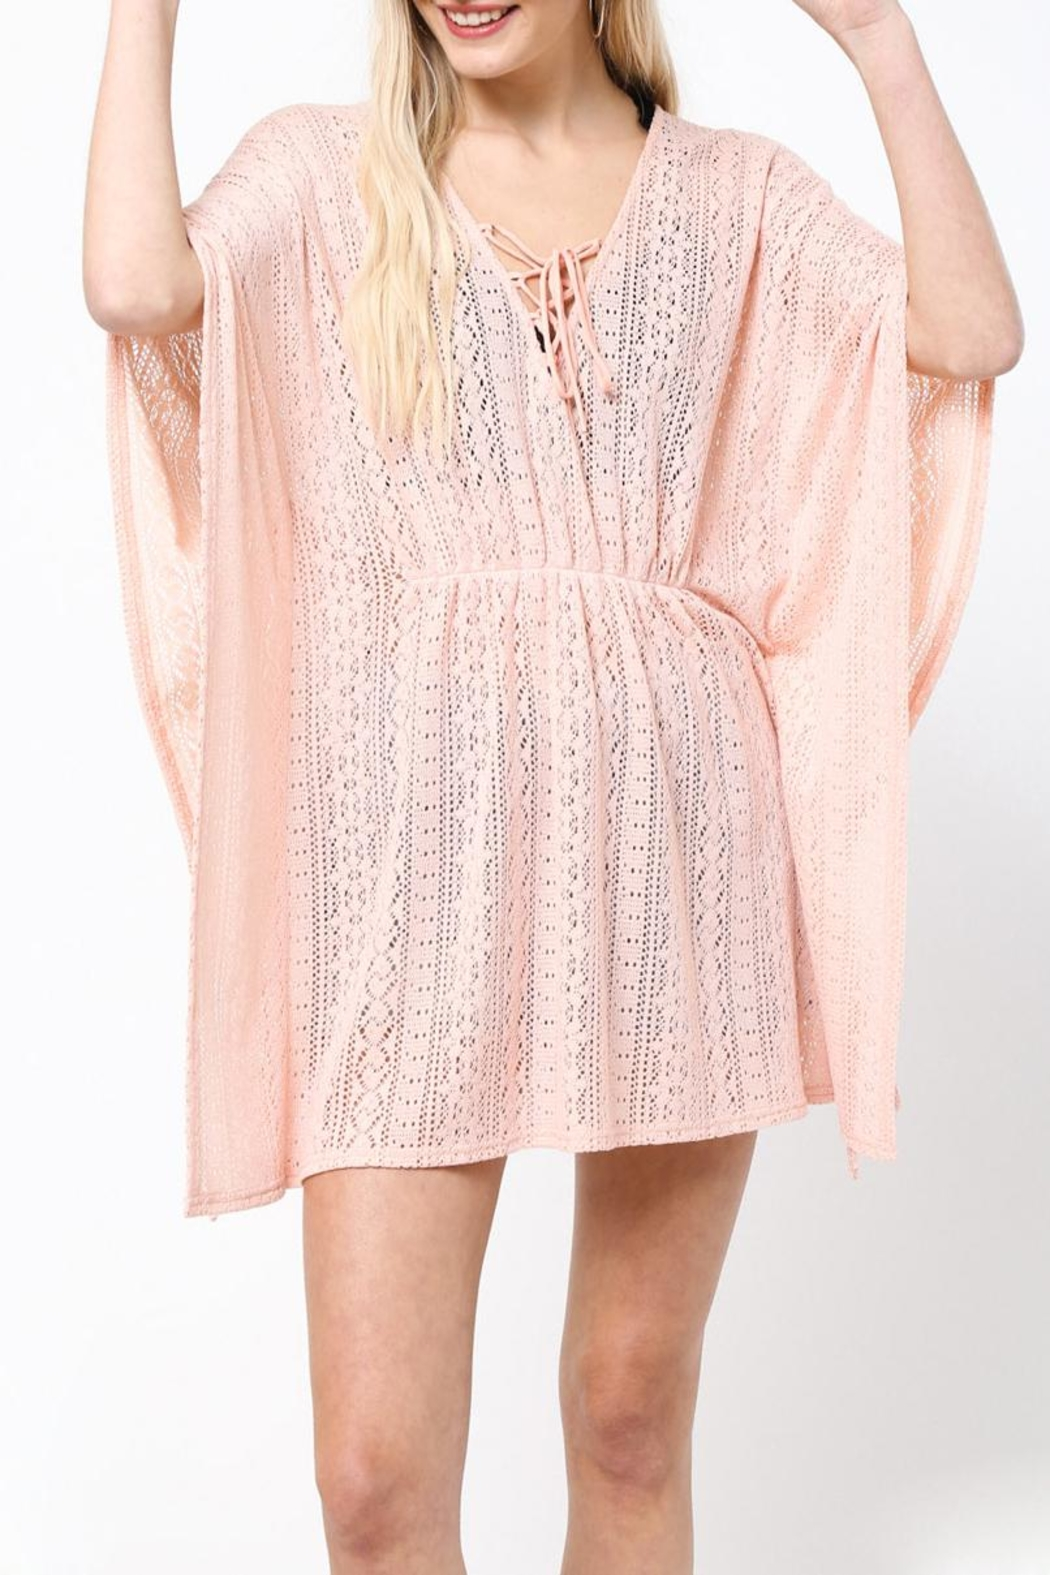 LoveRiche Peachy Keen Coverup - Main Image